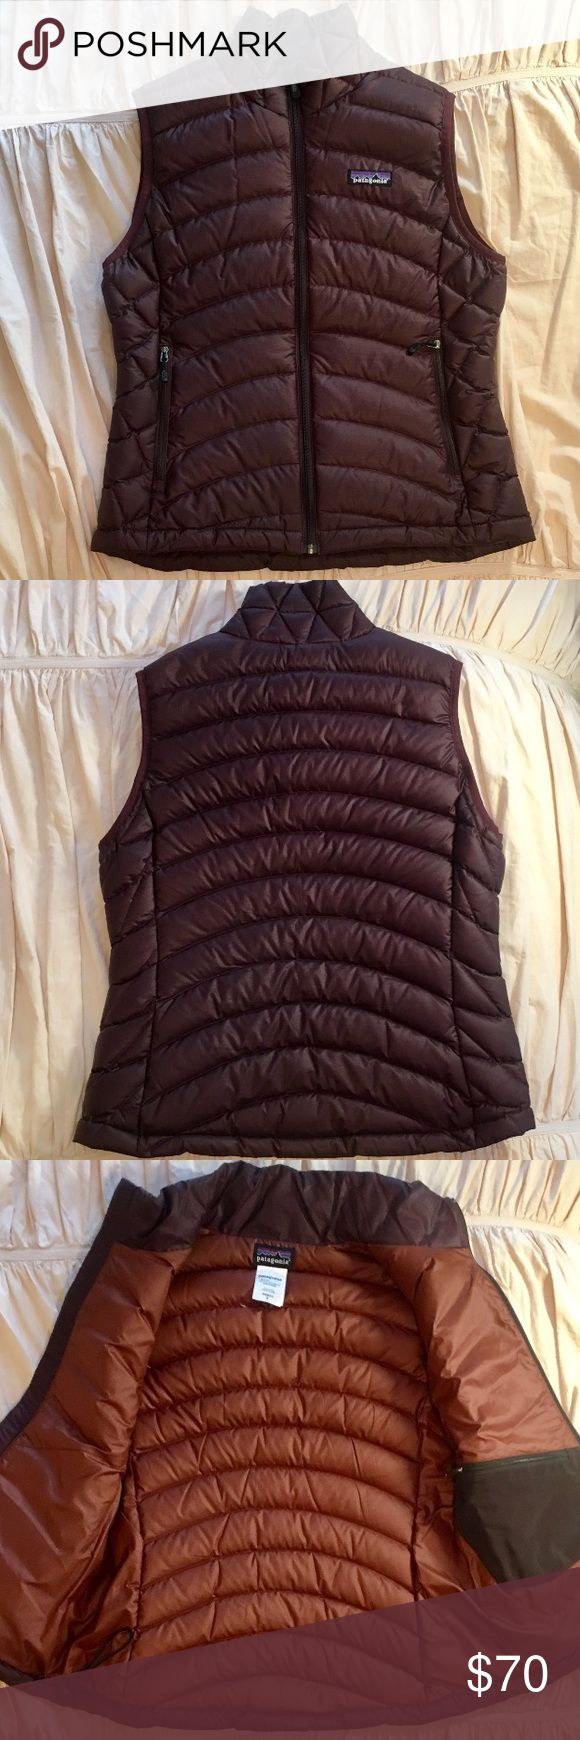 Patagonia Down Sweater Vest Pretty, rich brown color on this warm and light-weight Patagonia vest. Excellent condition- no noticeable signs of wear. Two zipper pockets in front, one zipper pocket on inside, and elastic drawstring around waist. 100% polyester and 85% goosedown filling.  I accept most reasonable offers. Patagonia Jackets & Coats Vests